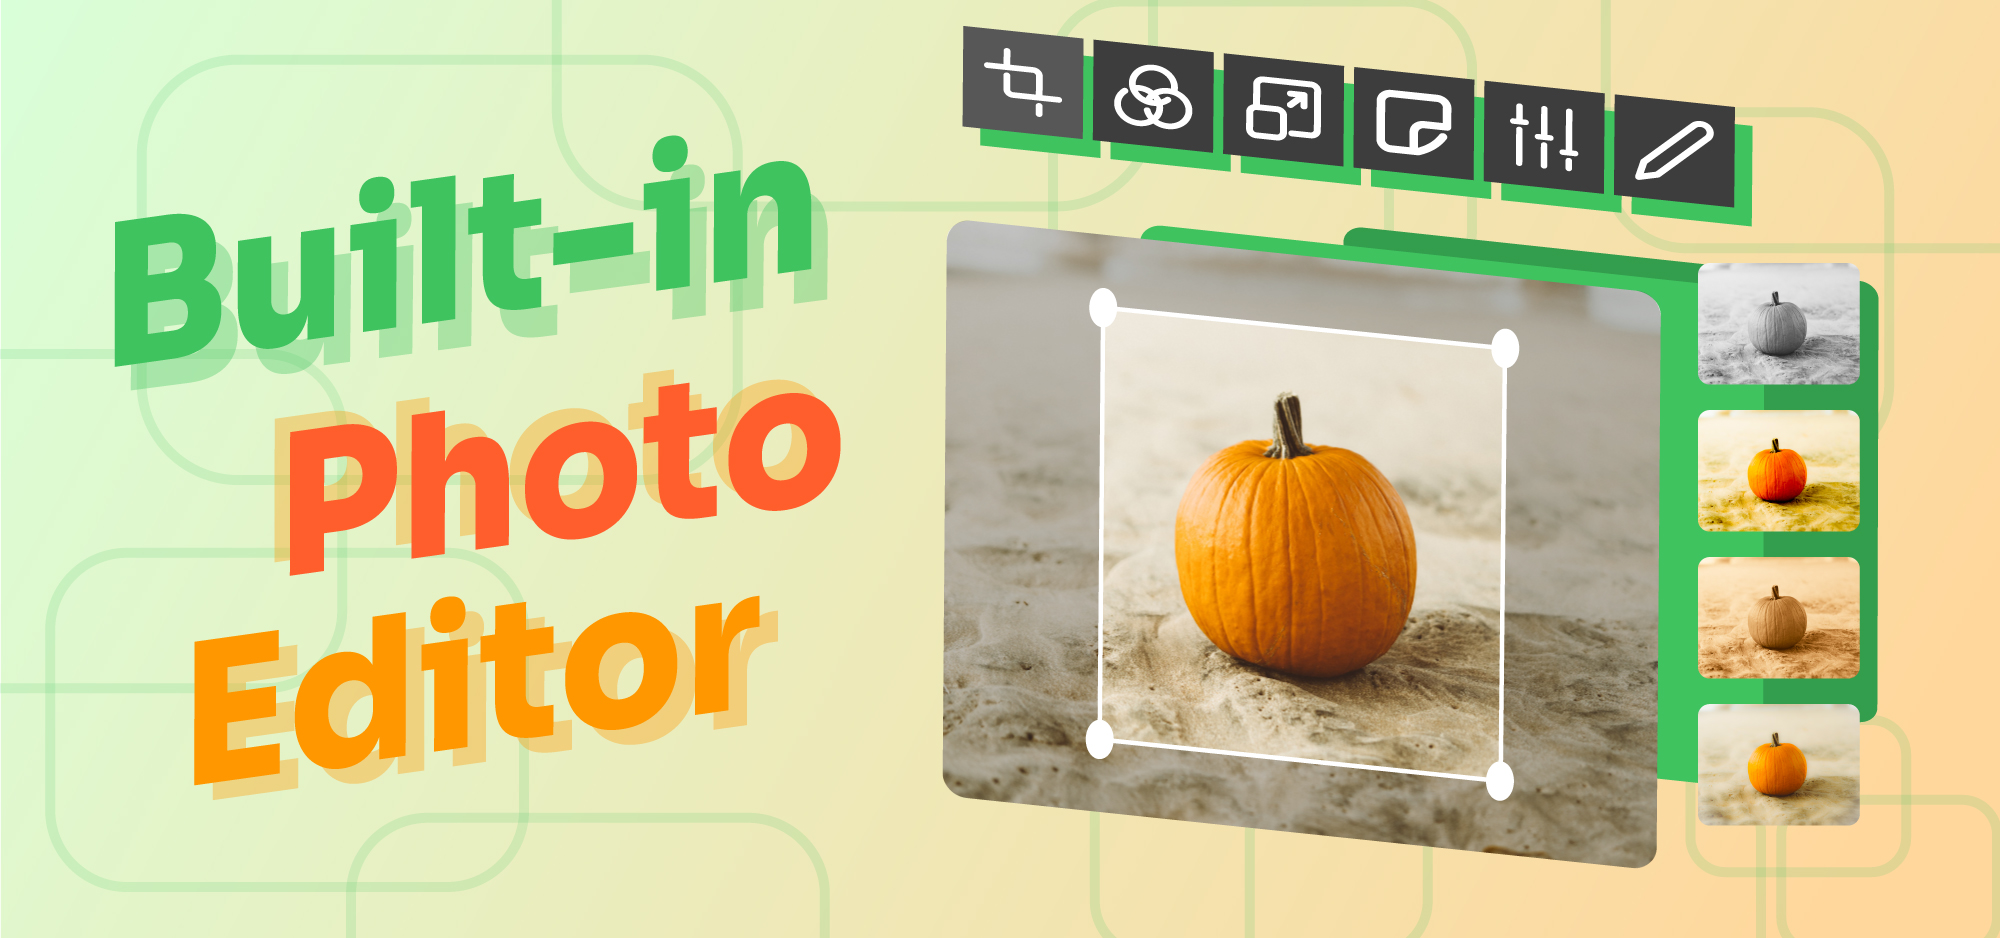 Built-In Photo Editor